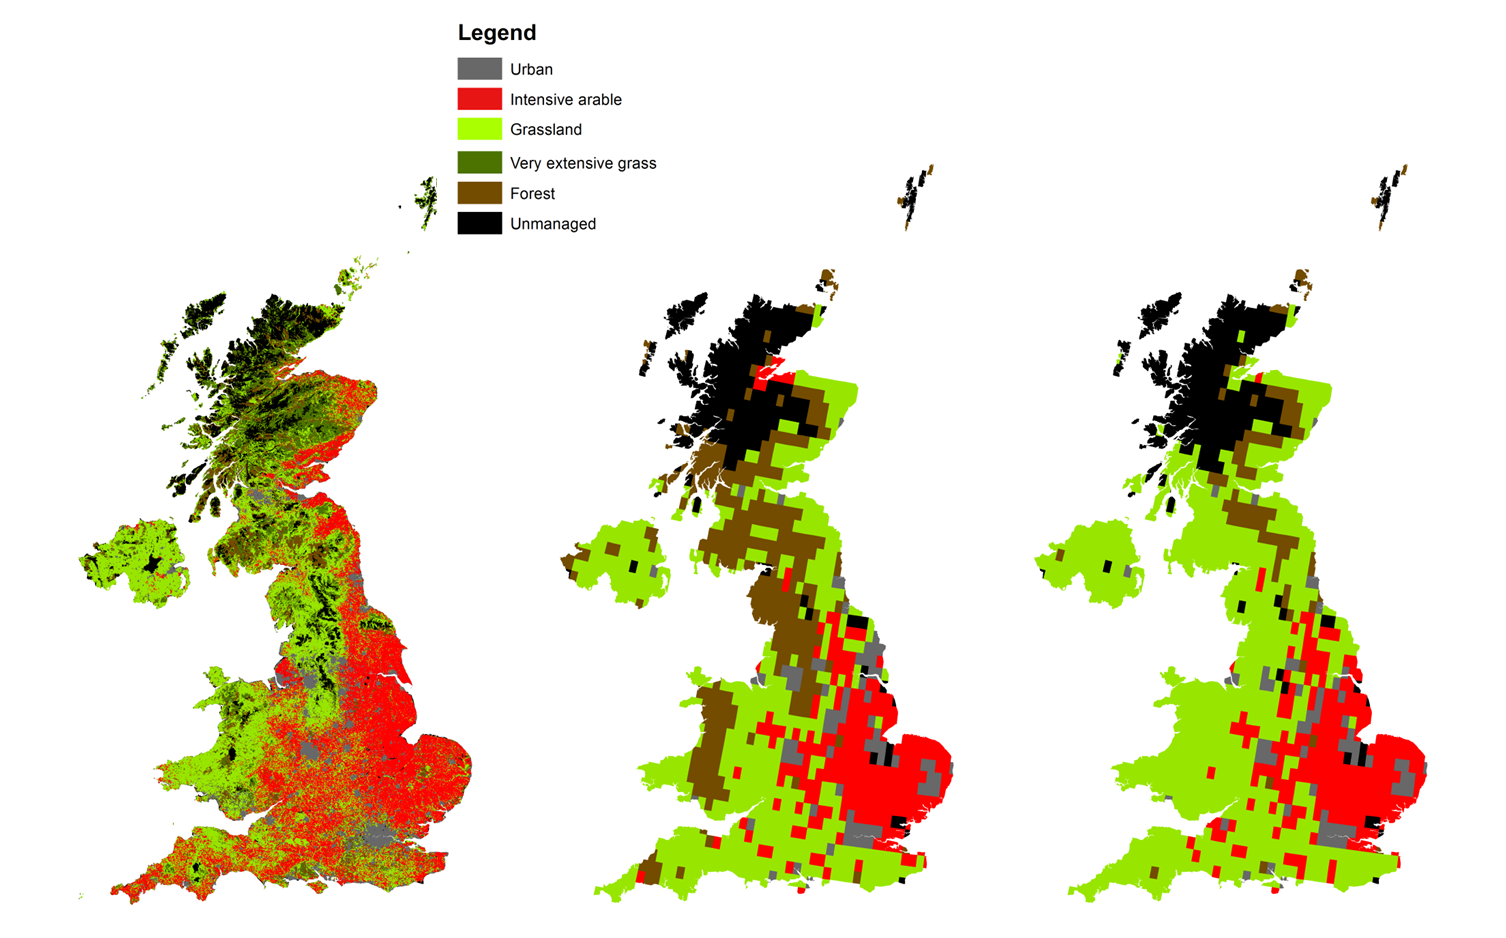 (Left): Observed CORINE land use, (middle): Model simulated land use for the baseline period (majority land use type for each grid cell shown), (Right): Model simulated land use with 20% decrease in precipitation